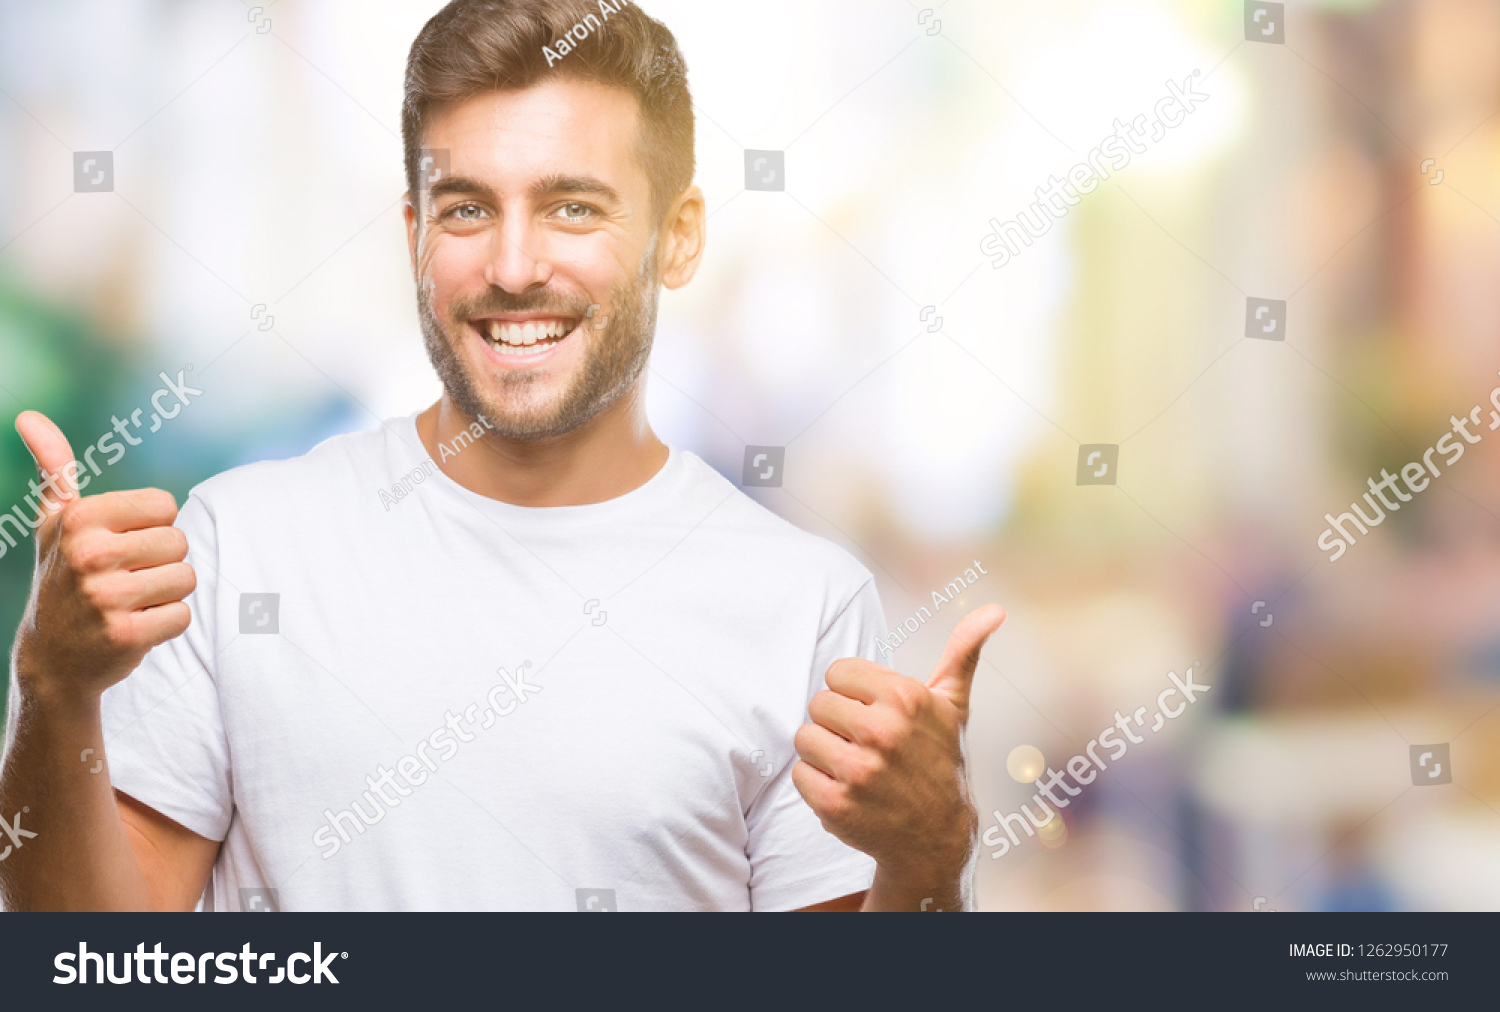 Young handsome man over isolated background success sign doing positive gesture with hand, thumbs up smiling and happy. Looking at the camera with cheerful expression, winner gesture. #1262950177